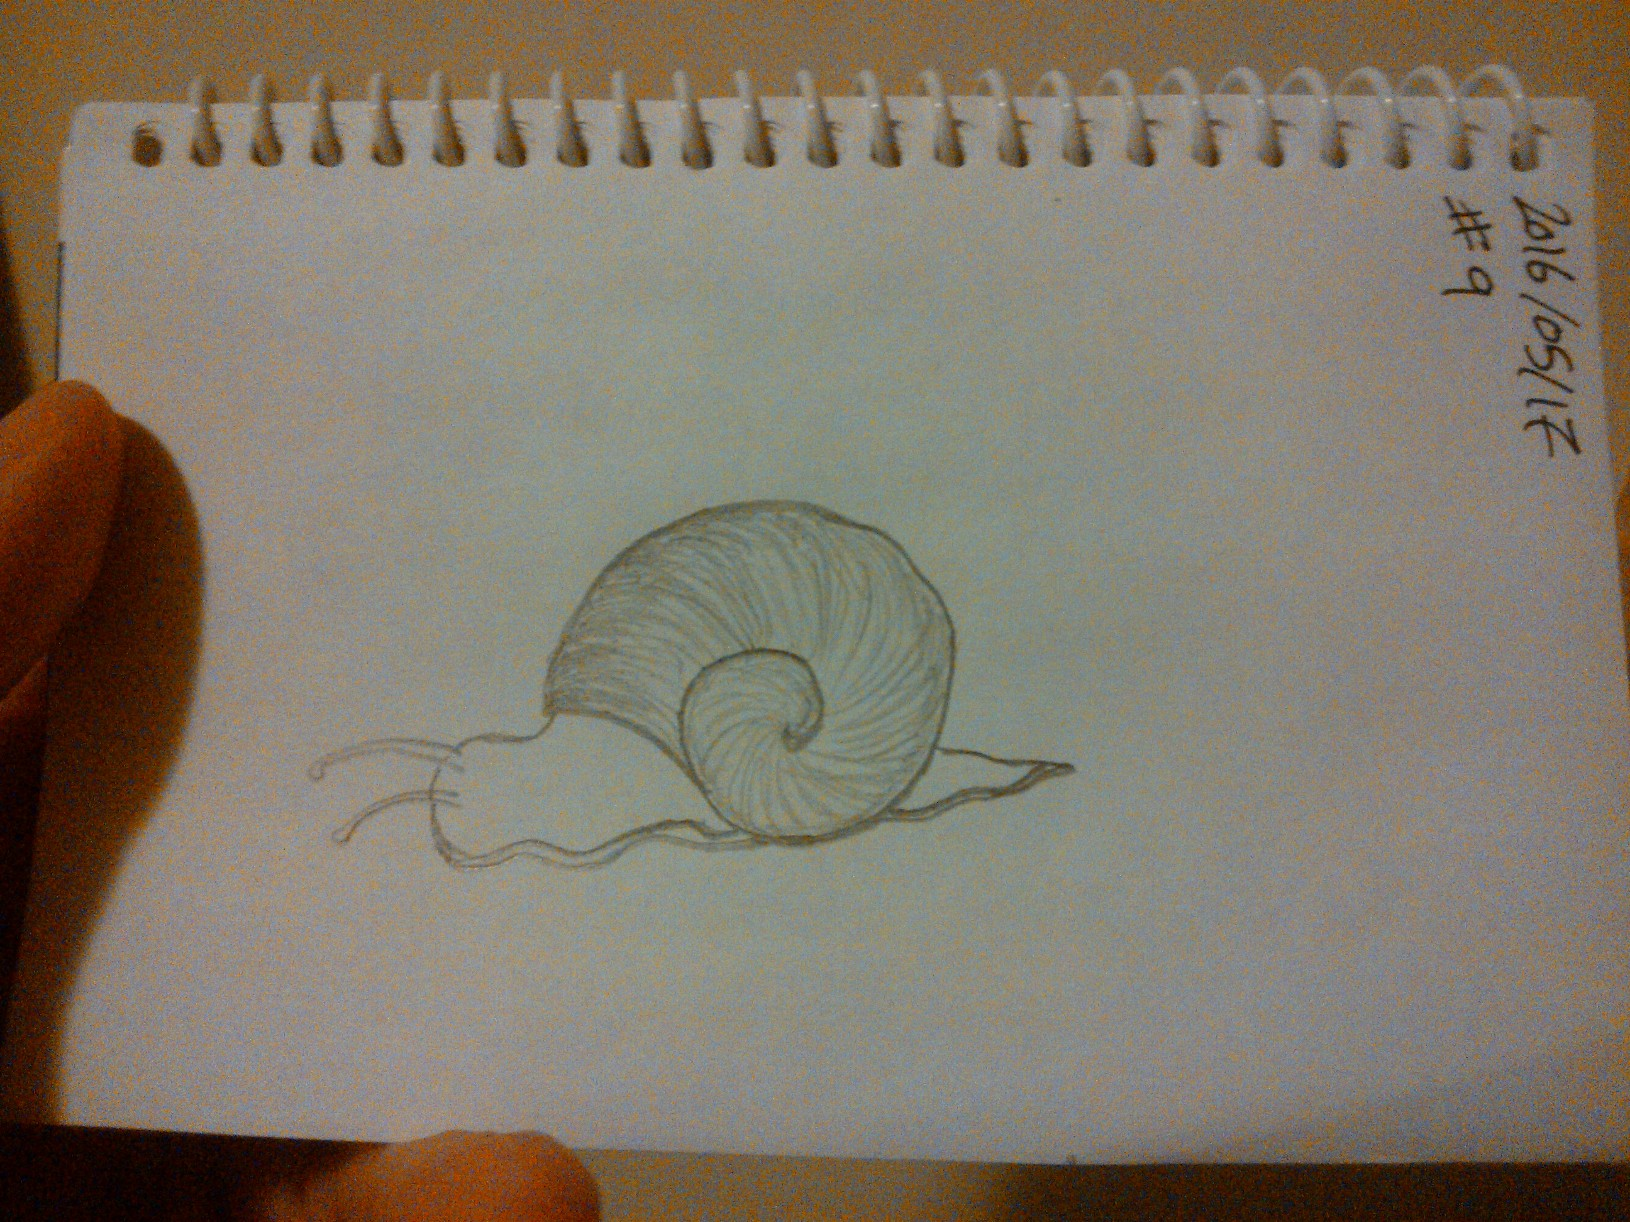 Every Day A Drawing #9: A Snail